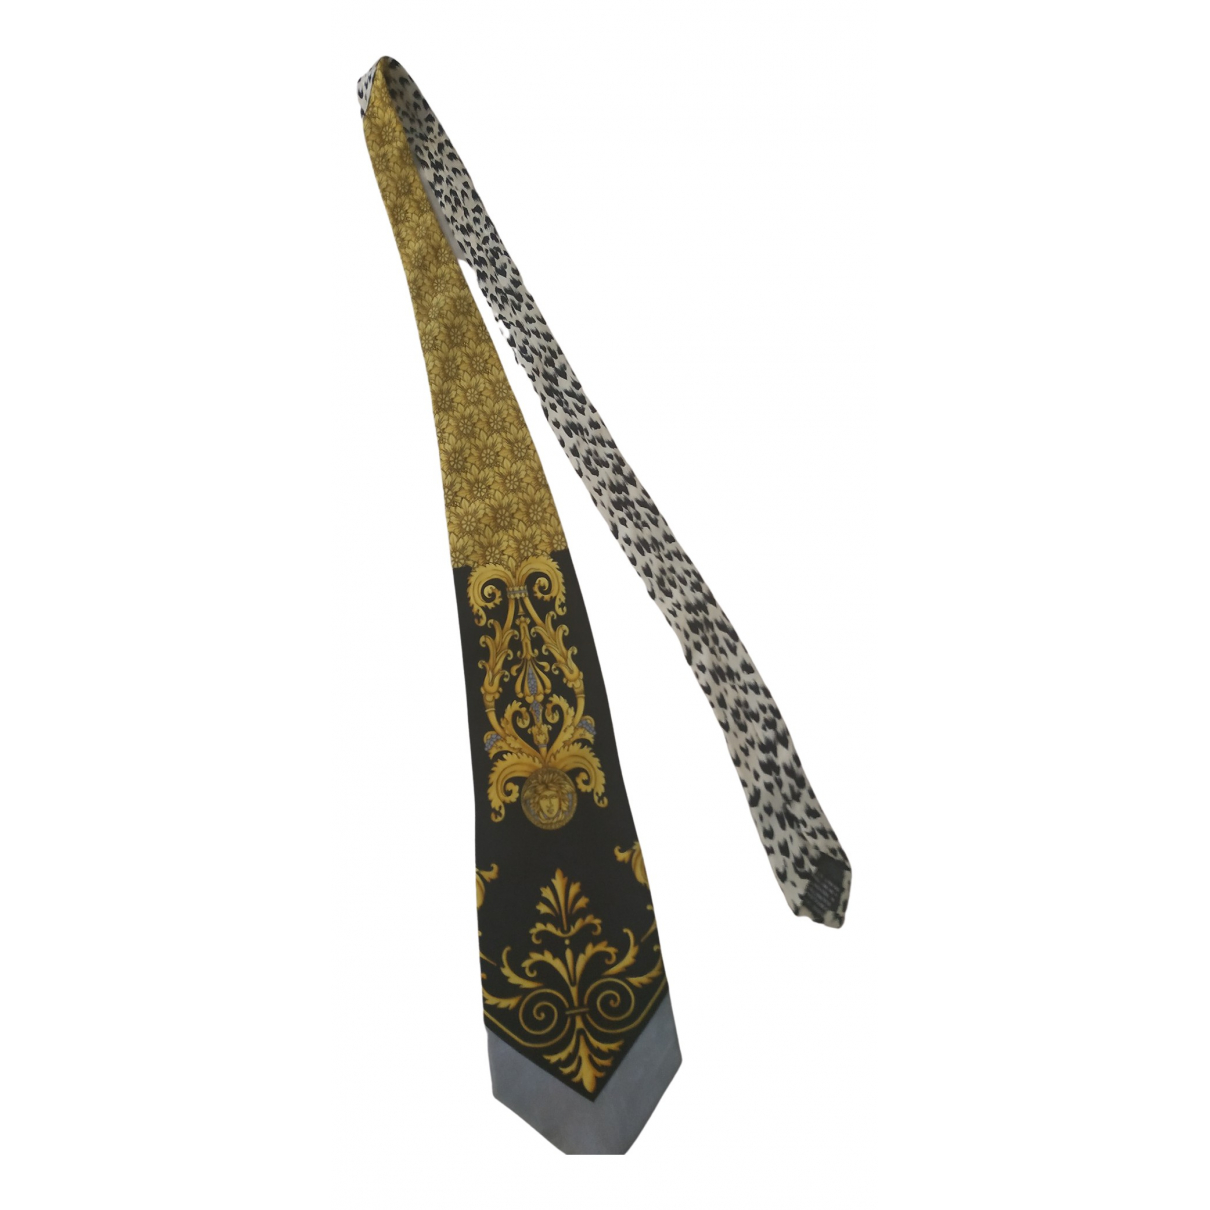 Gianni Versace N Camel Silk Ties for Men N